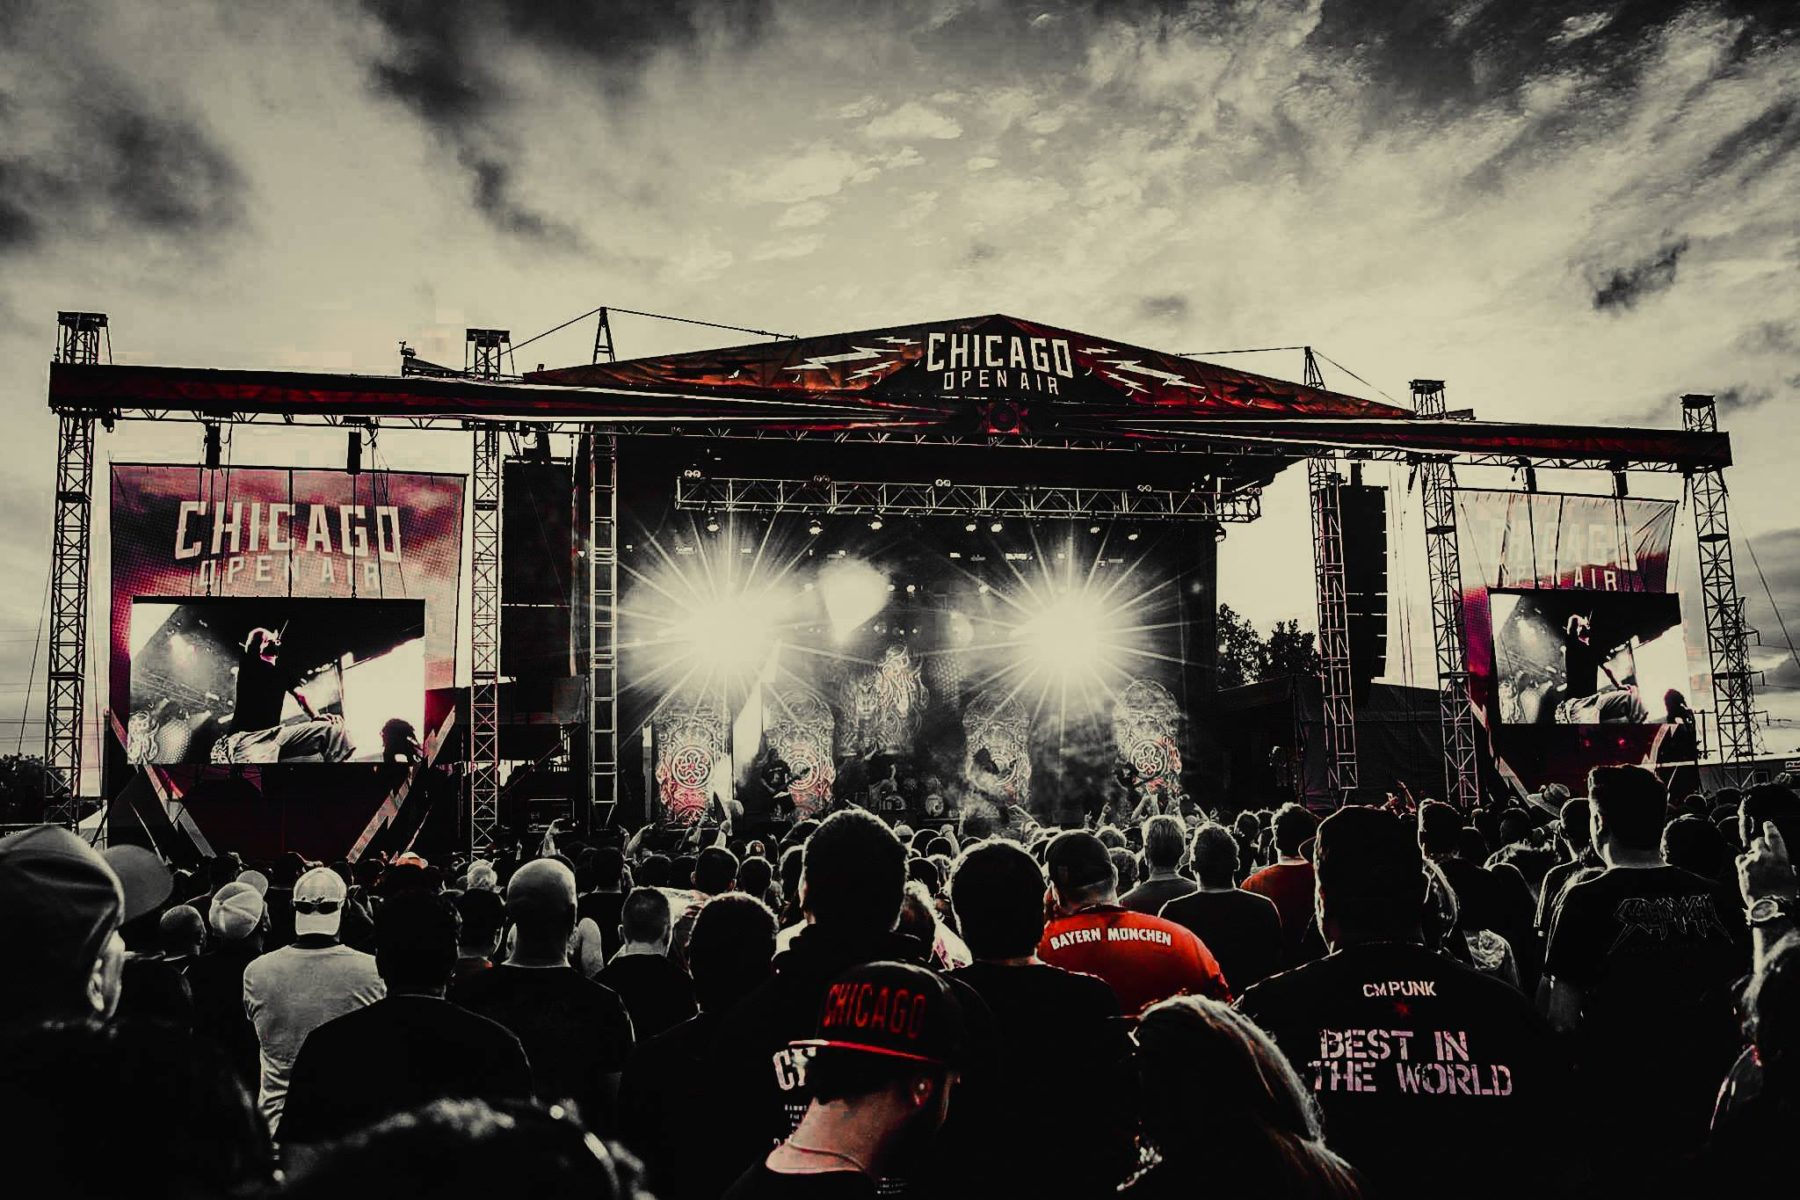 chicago open air is back for its second year of rock metal and